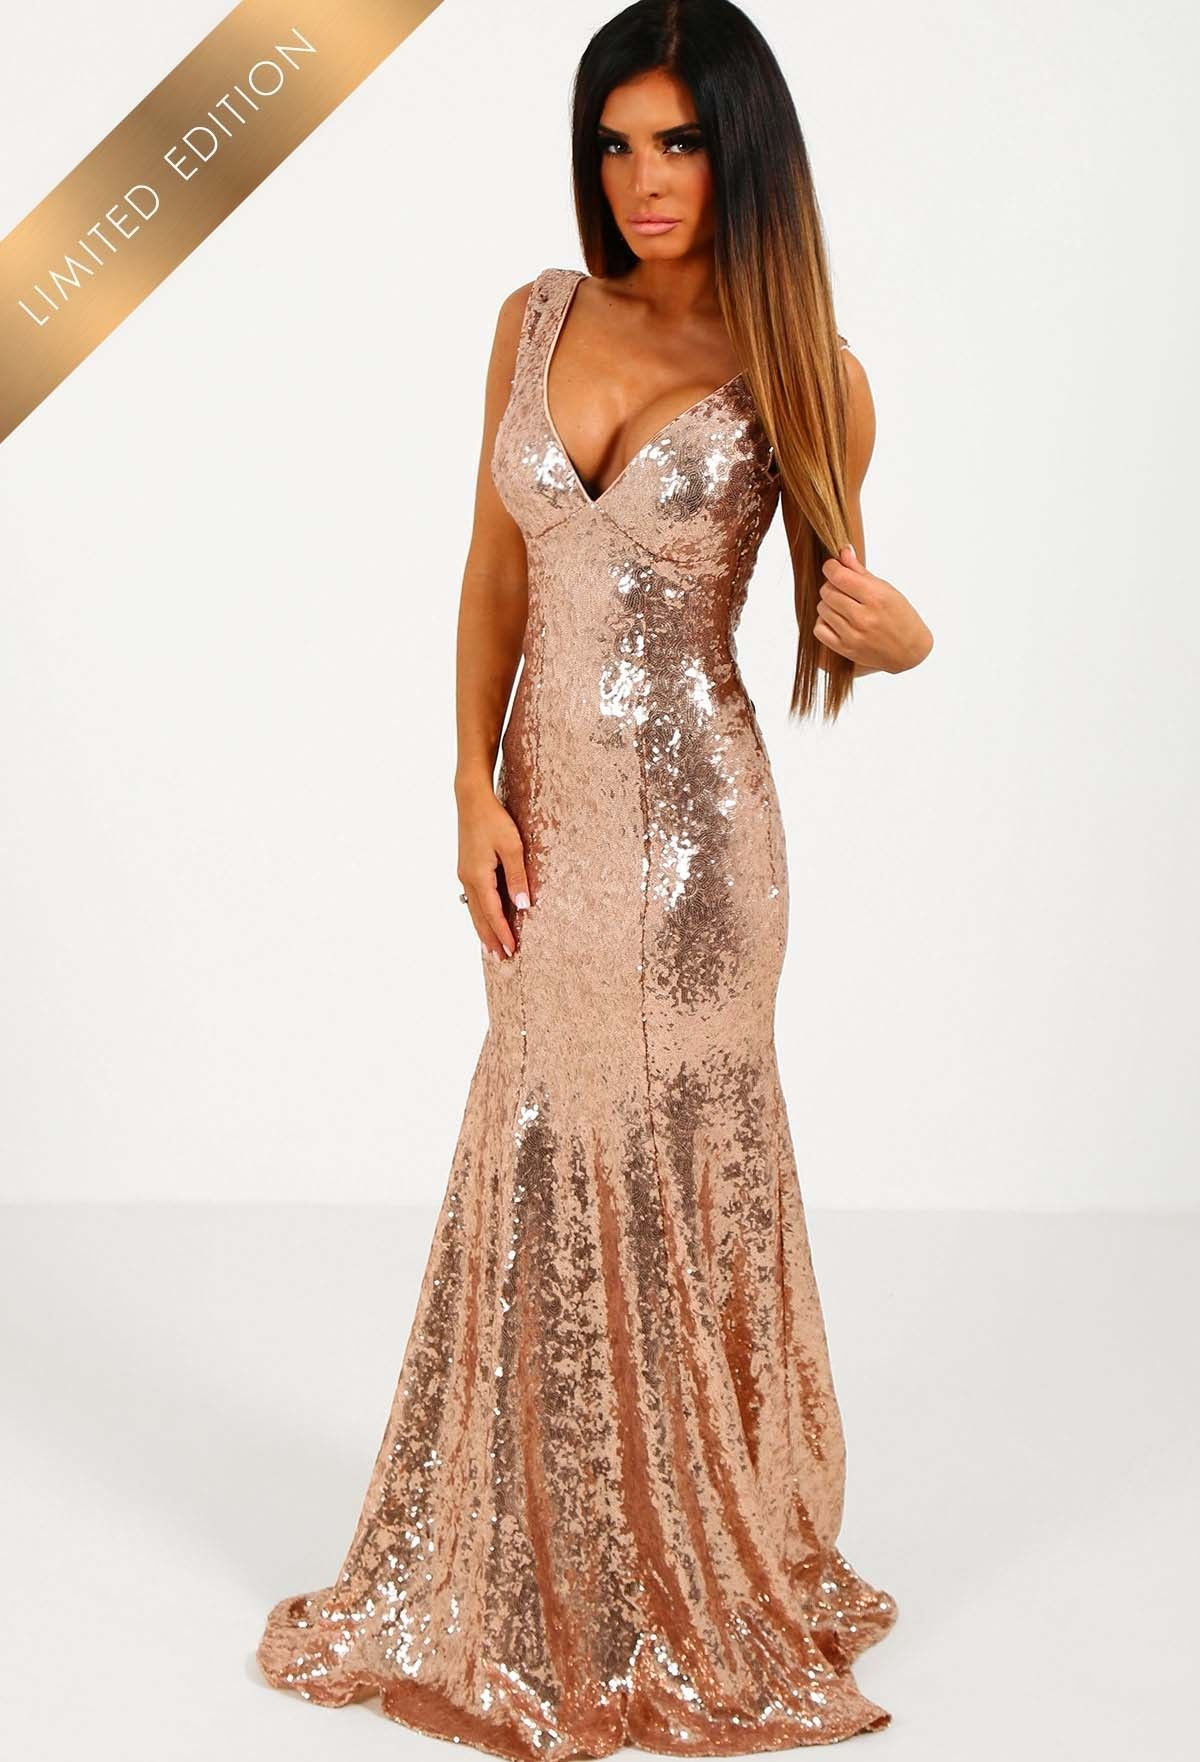 Limited edition sweet delight rose gold sequin plunge maxi dress